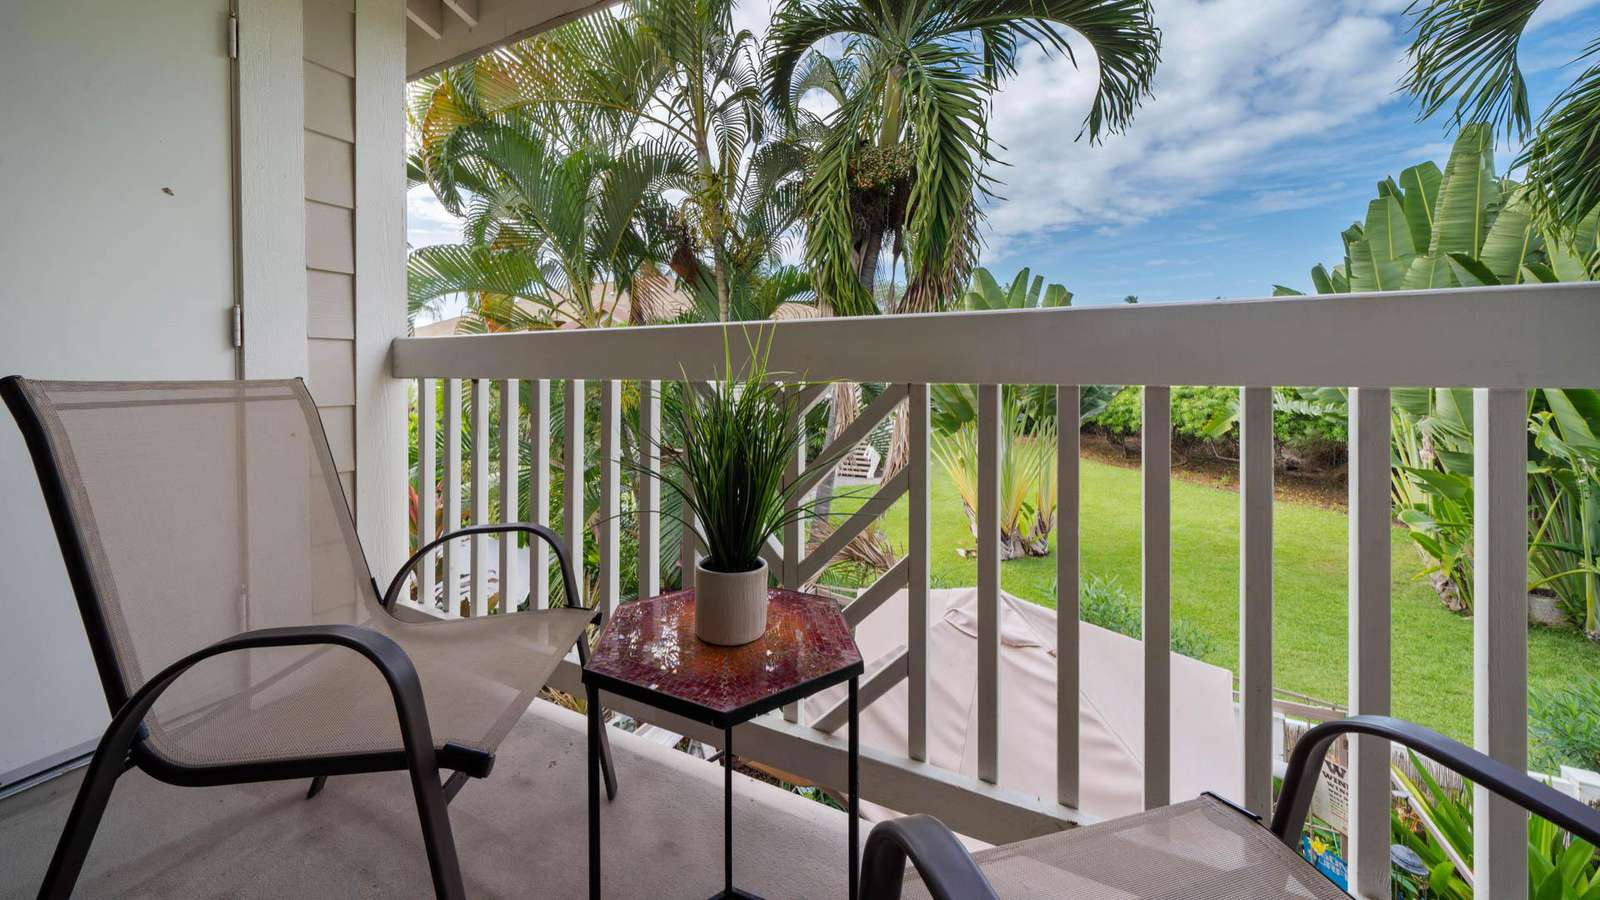 Relax on the lanai and enjoy the view.